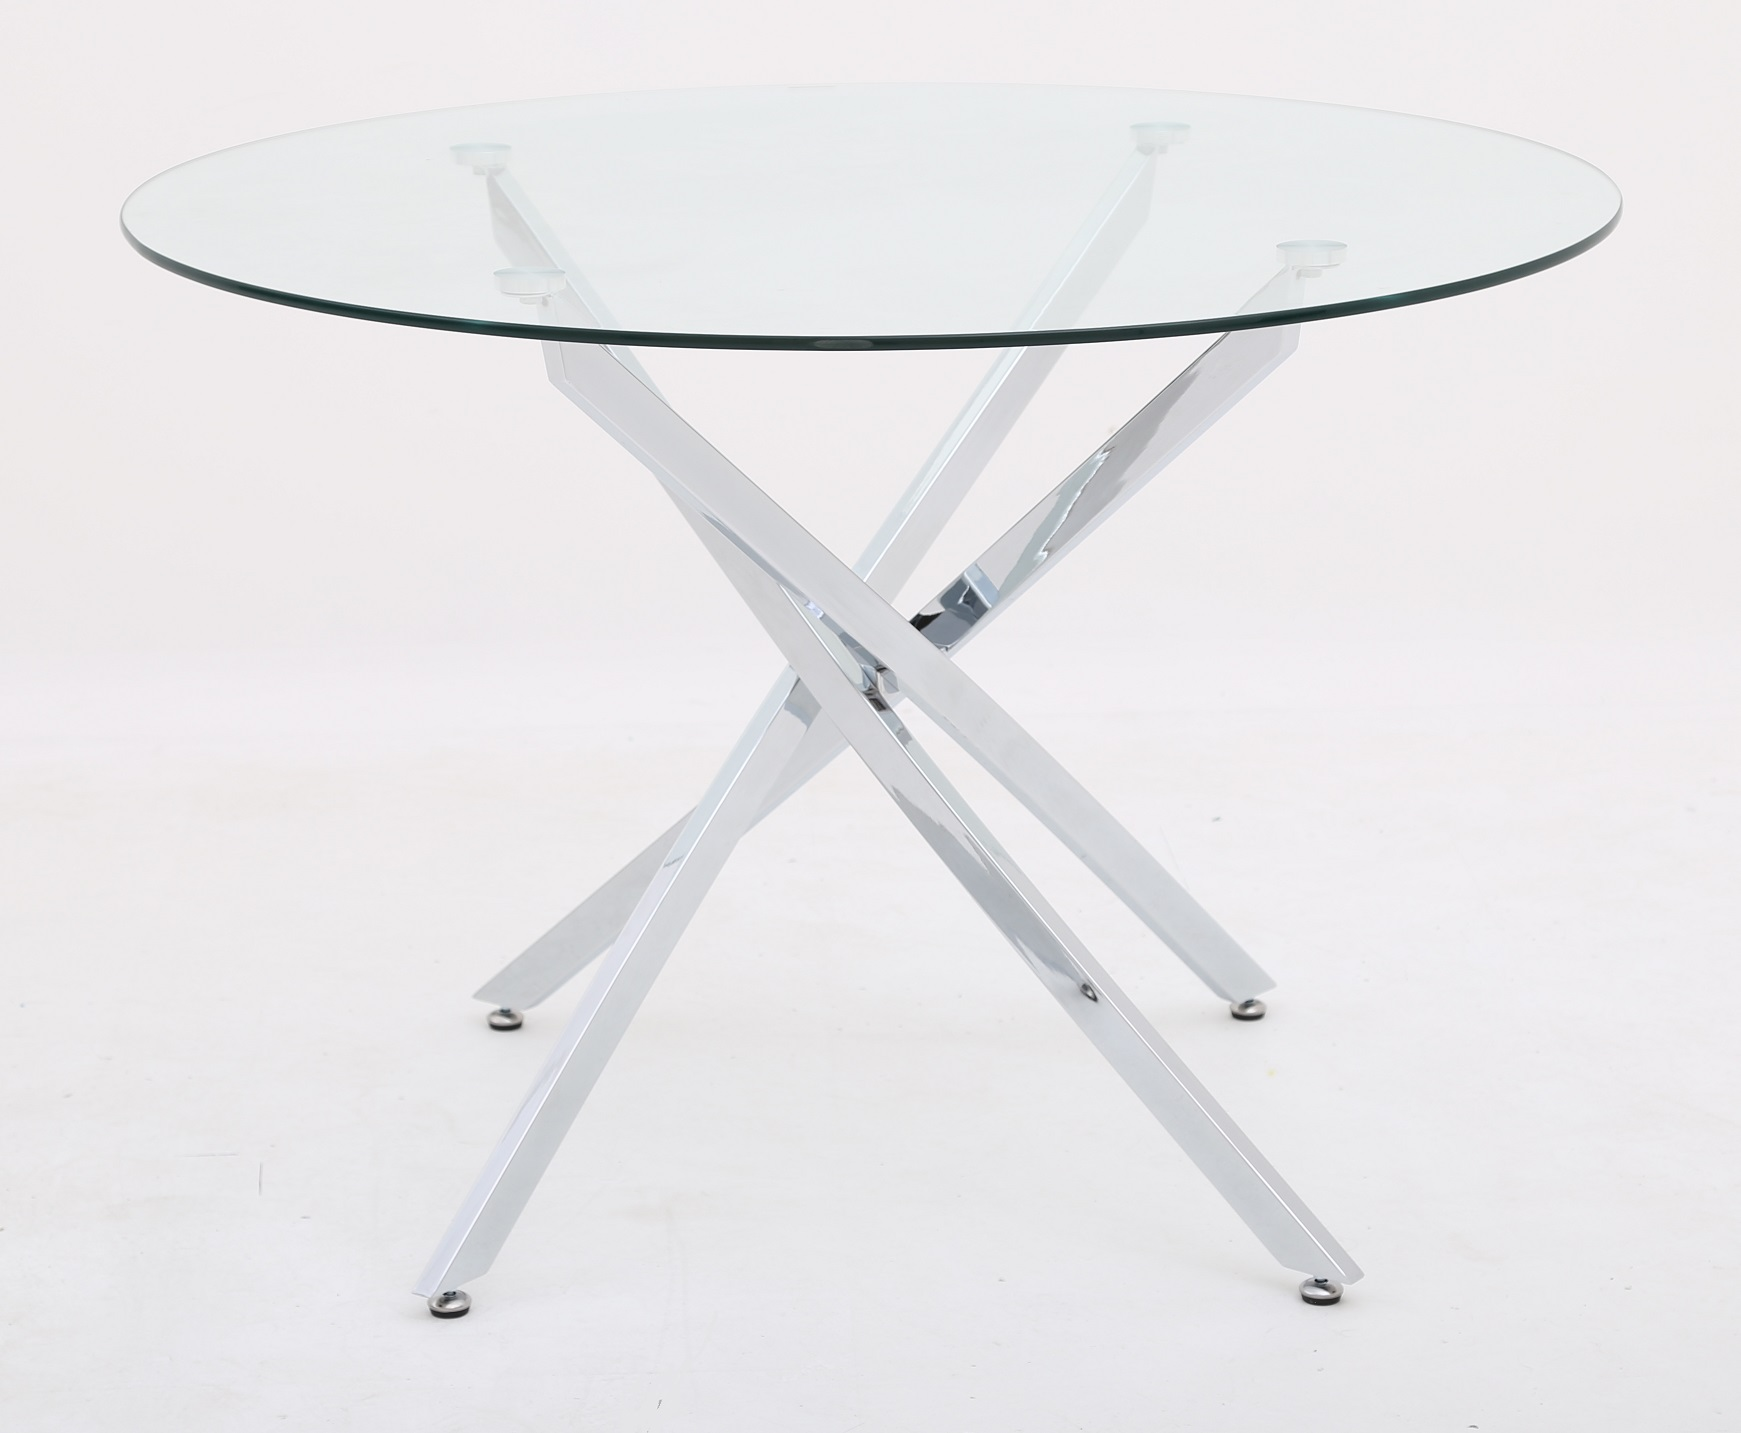 https://www.firstfurniture.co.uk/pub/media/catalog/product/c/l/clara_round_chrome_table1.jpg